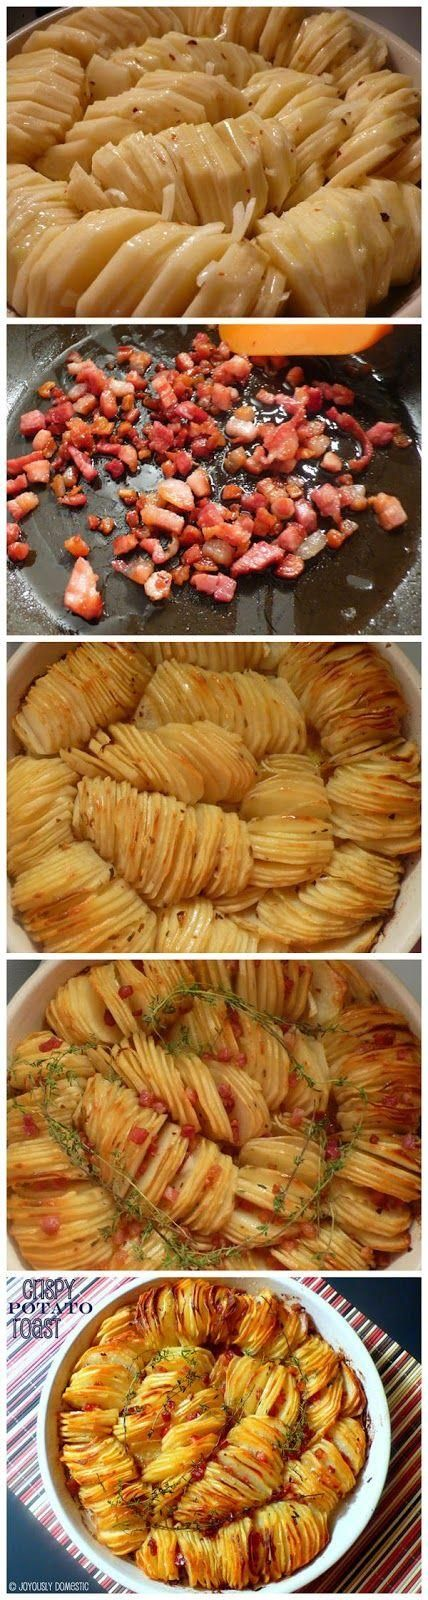 Crispy Potato Roast: